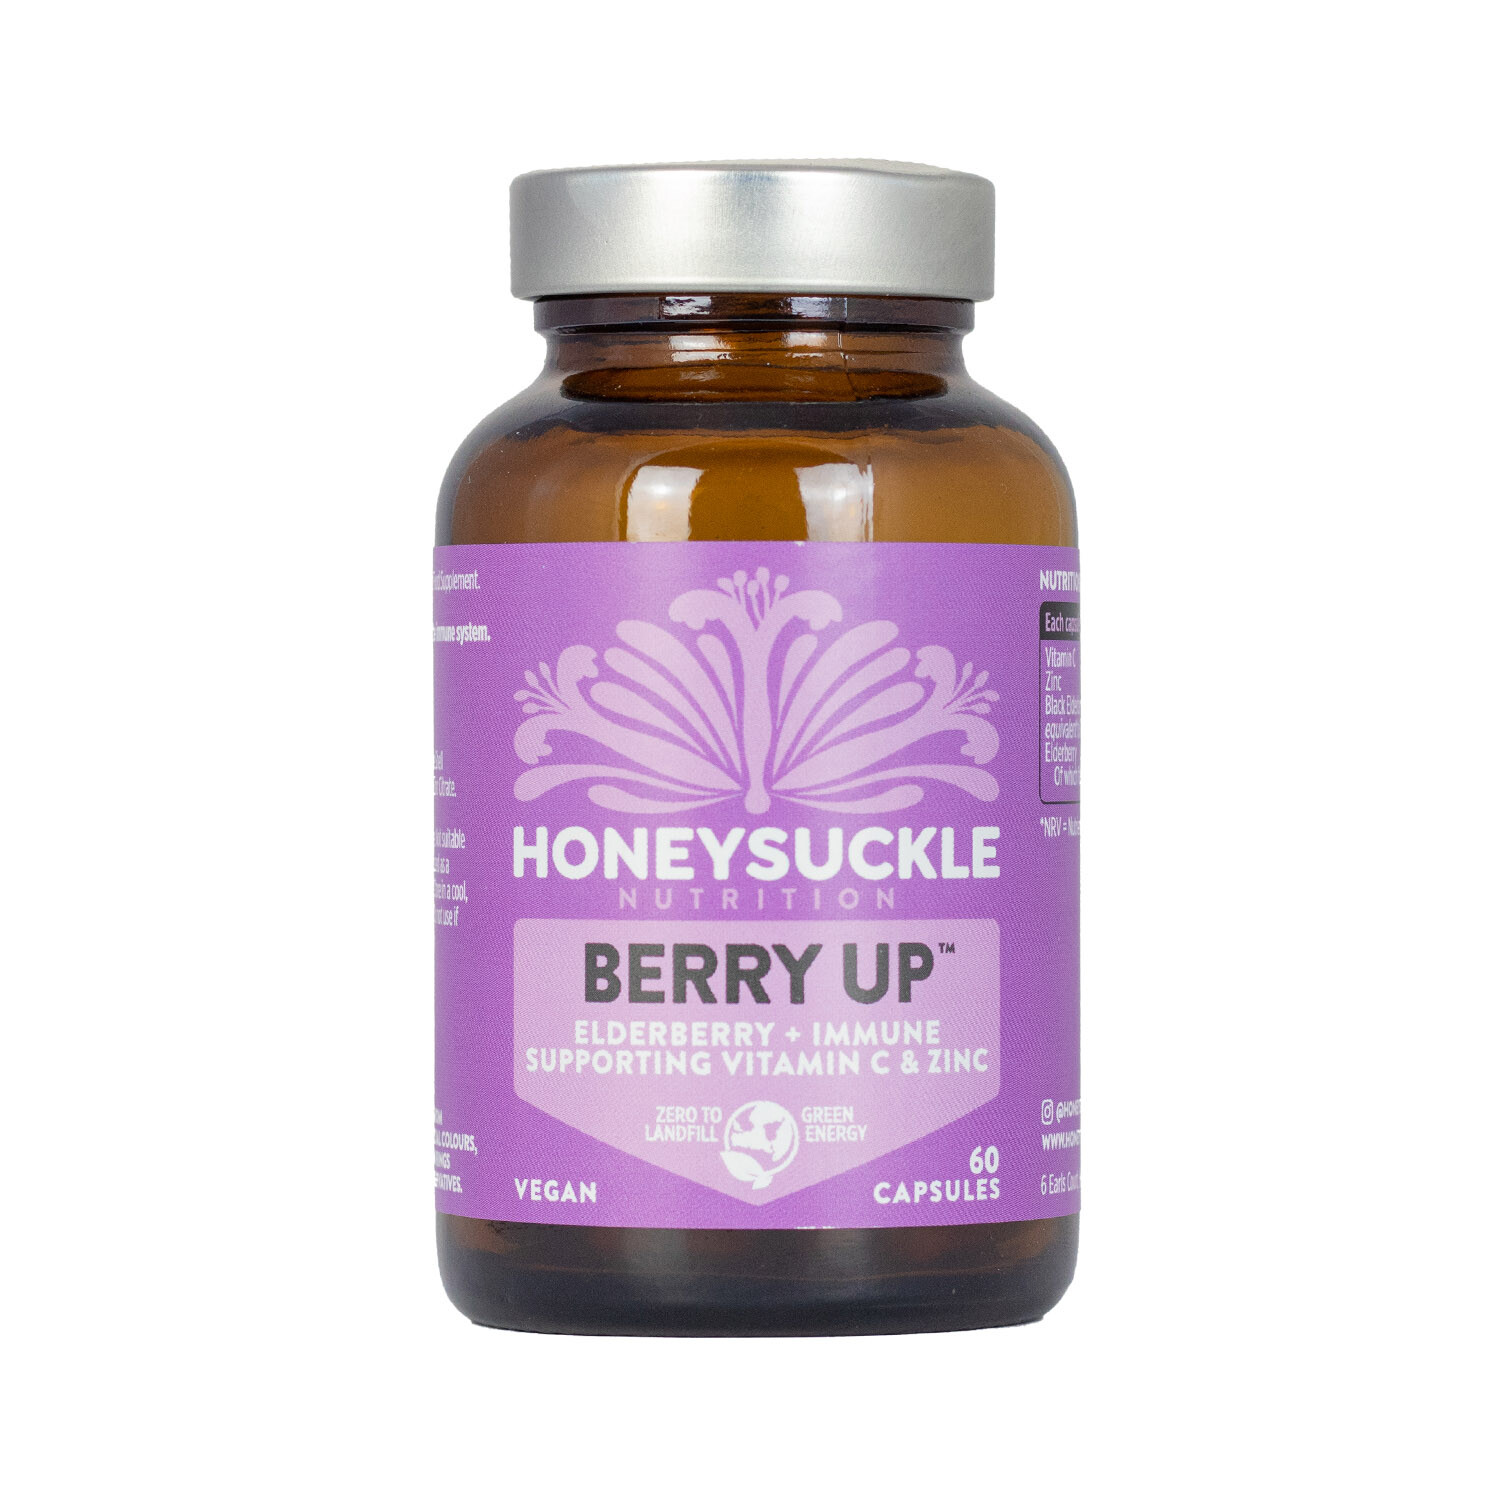 Berry up